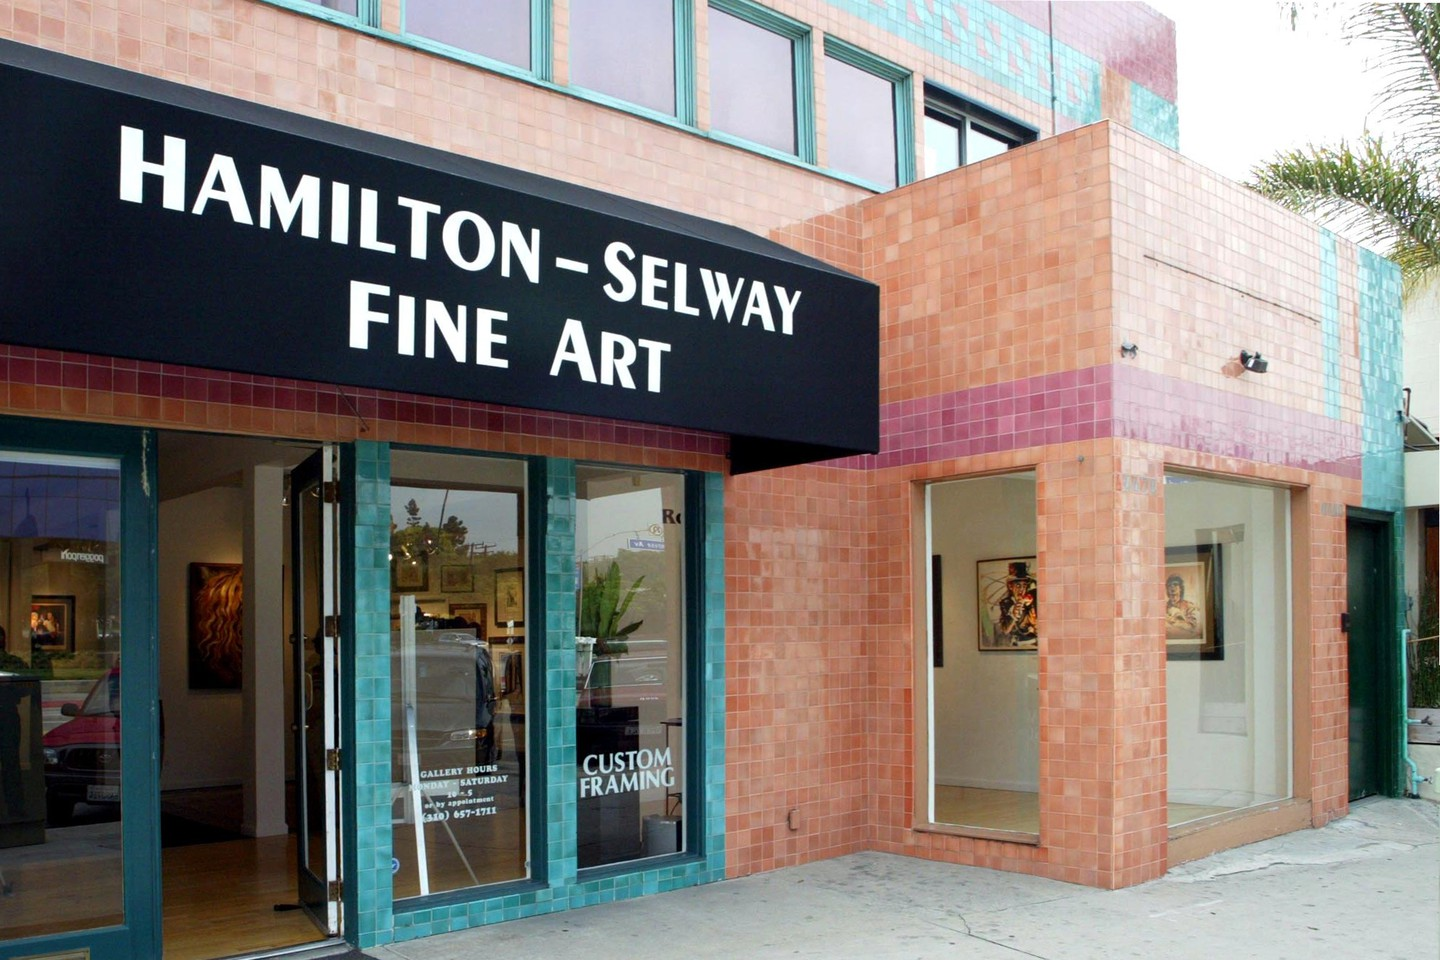 ART EXHIBITION BY RONNIE WOOD AT THE HAMILTON SELWAY FINE ART GALLERY, LOS ANGELES, AMERICA - 01 NOV 2002